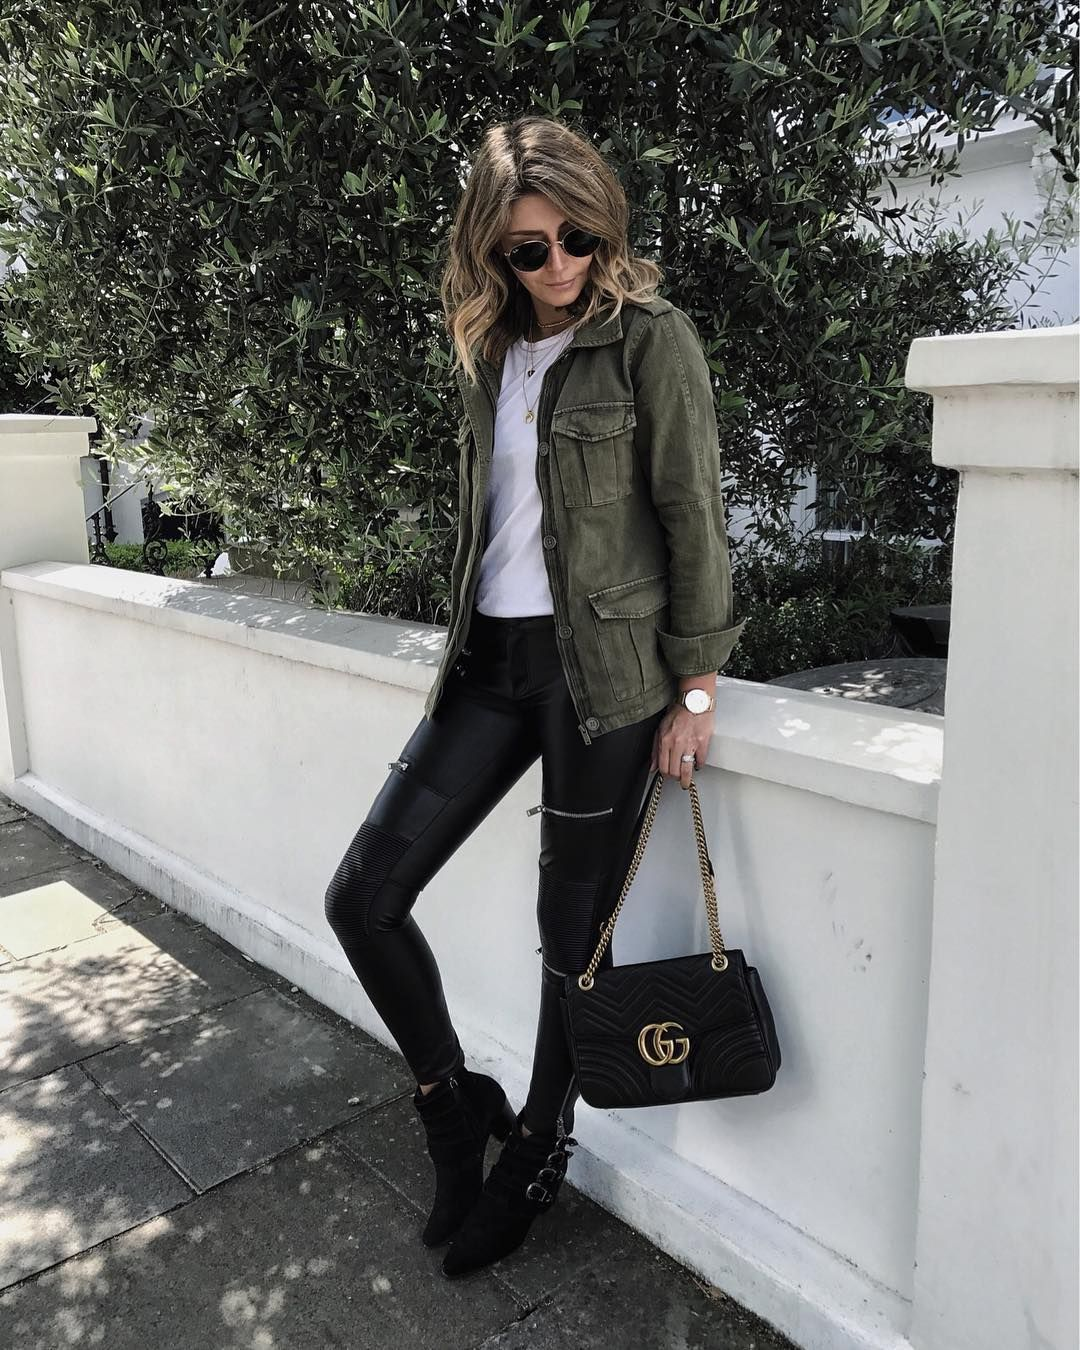 3,347 Likes, 46 Comments - Emma Hill | EJSTYLE (@emmahill) on Instagram